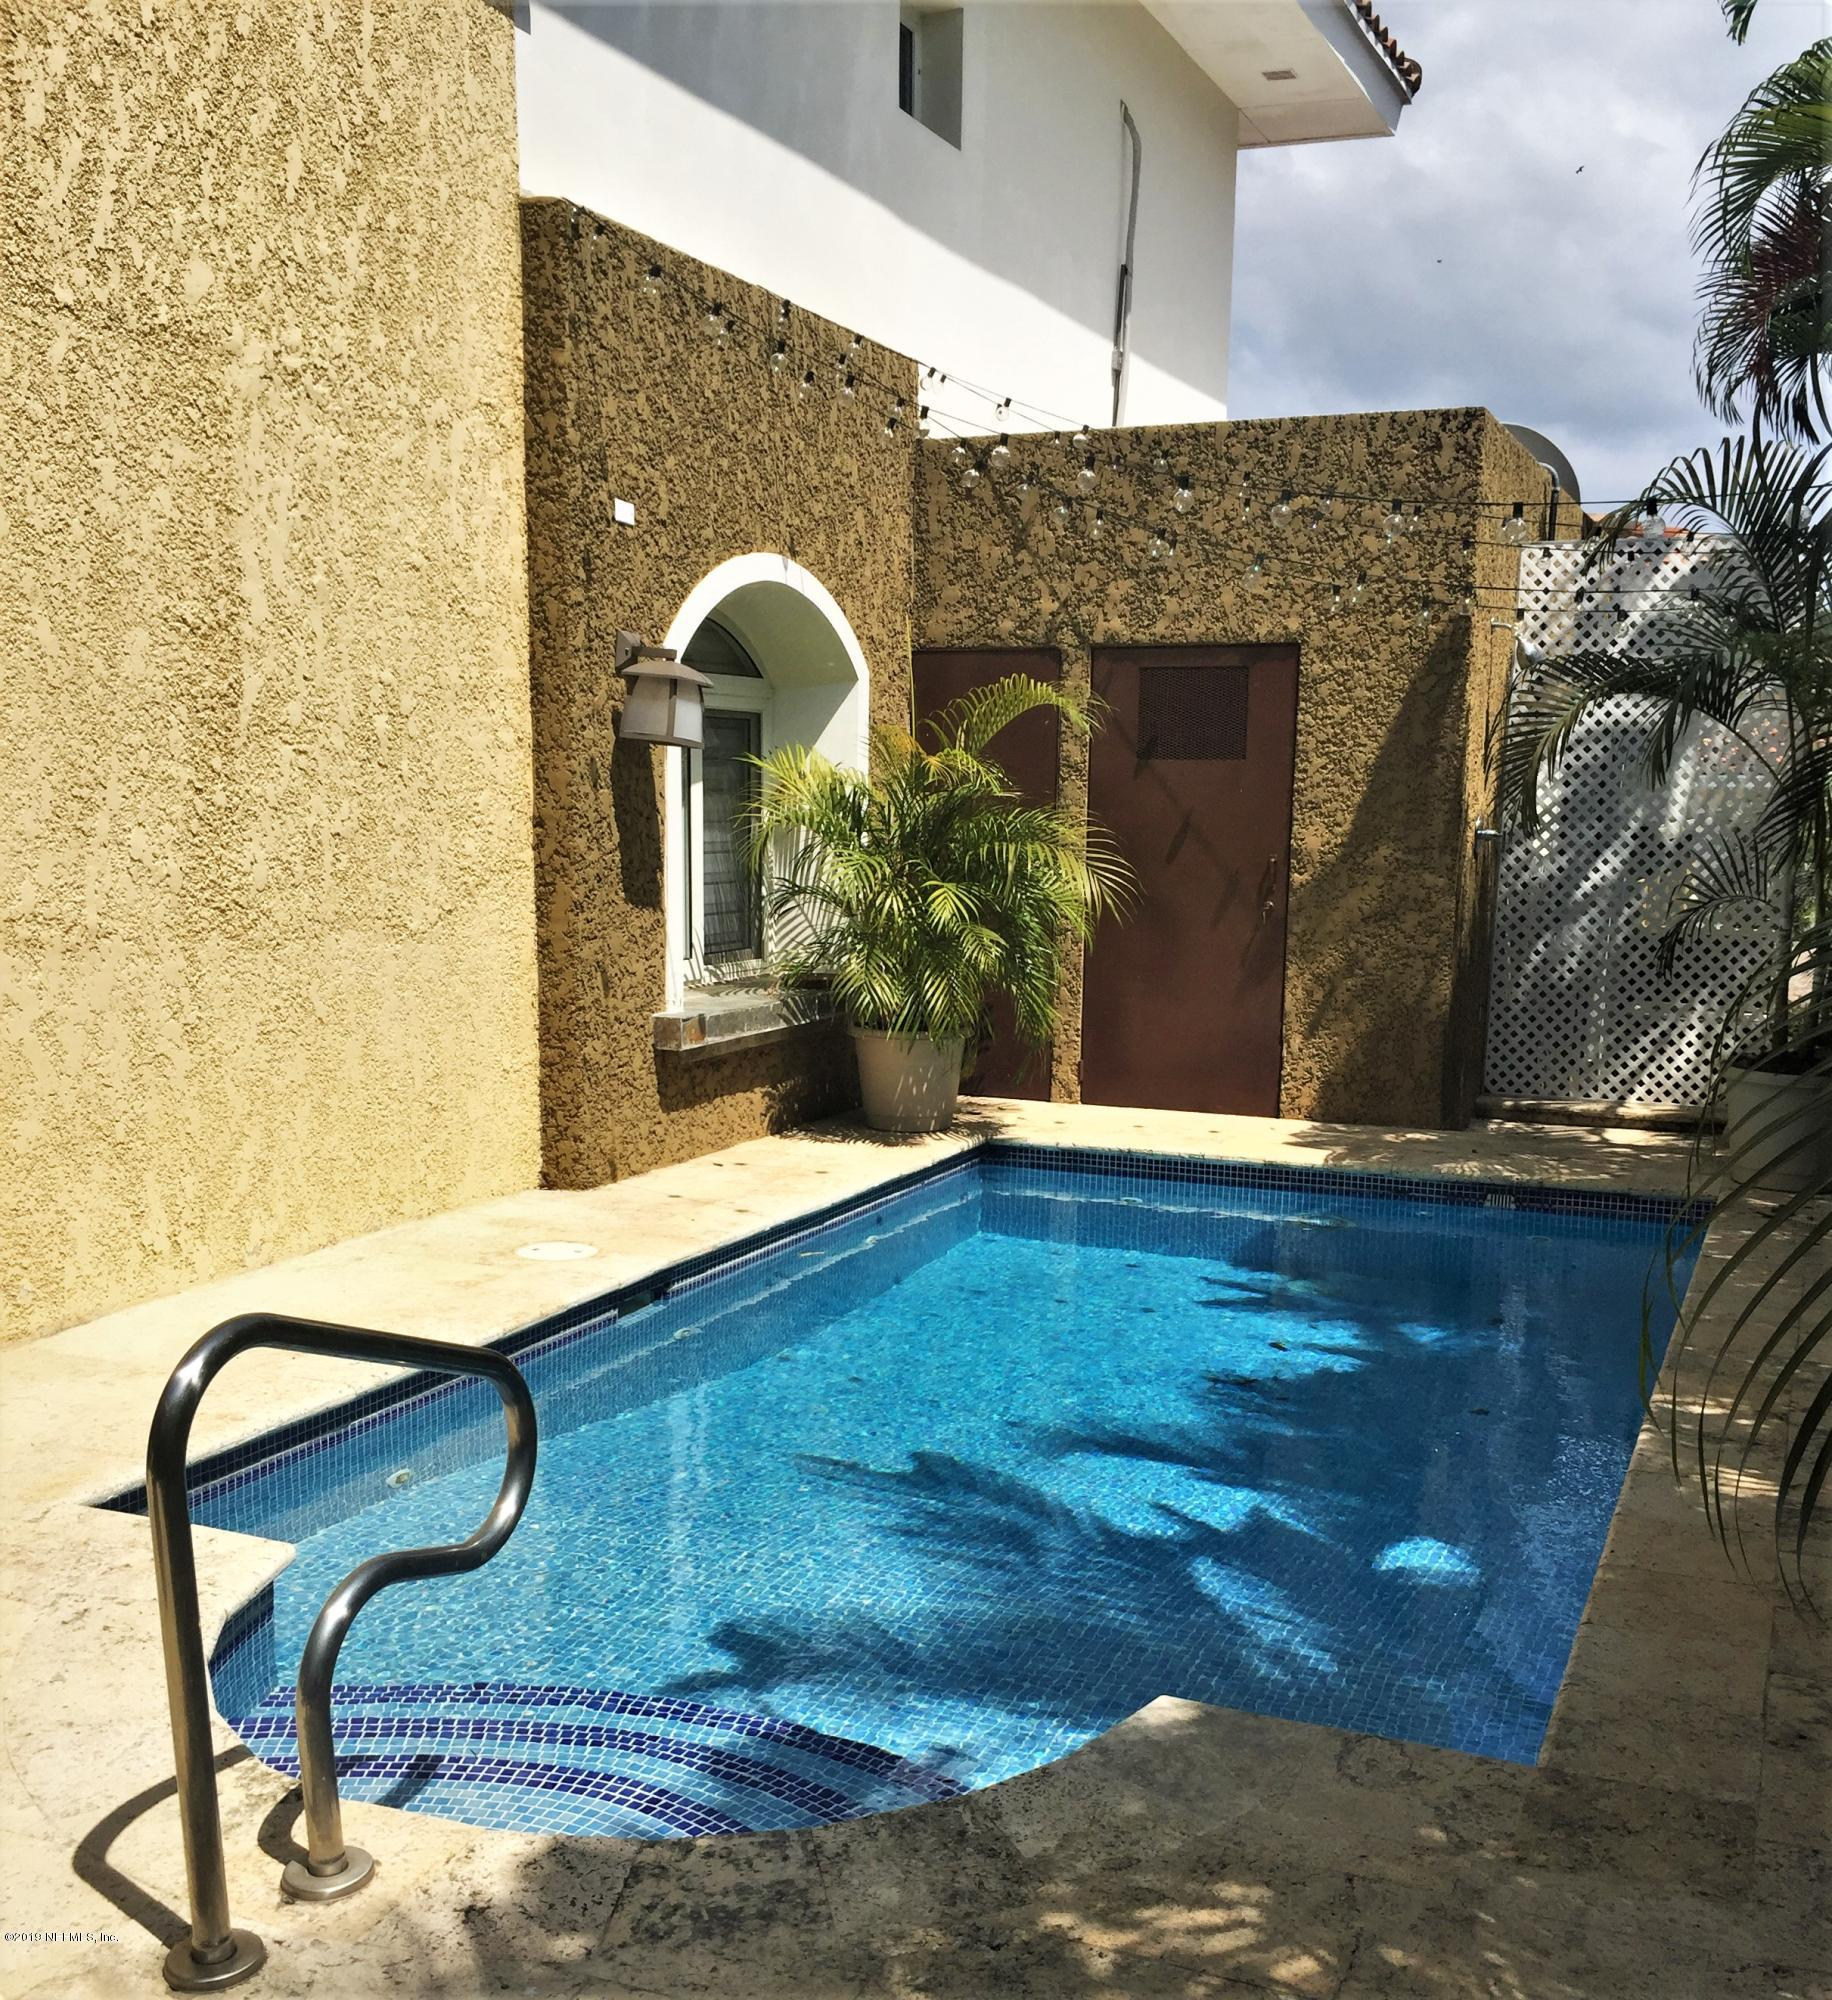 34A MASTERS, COCOLI, PANAMA OESTE 01001, 3 Bedrooms Bedrooms, ,3 BathroomsBathrooms,Rental,For Rent,MASTERS,1000360